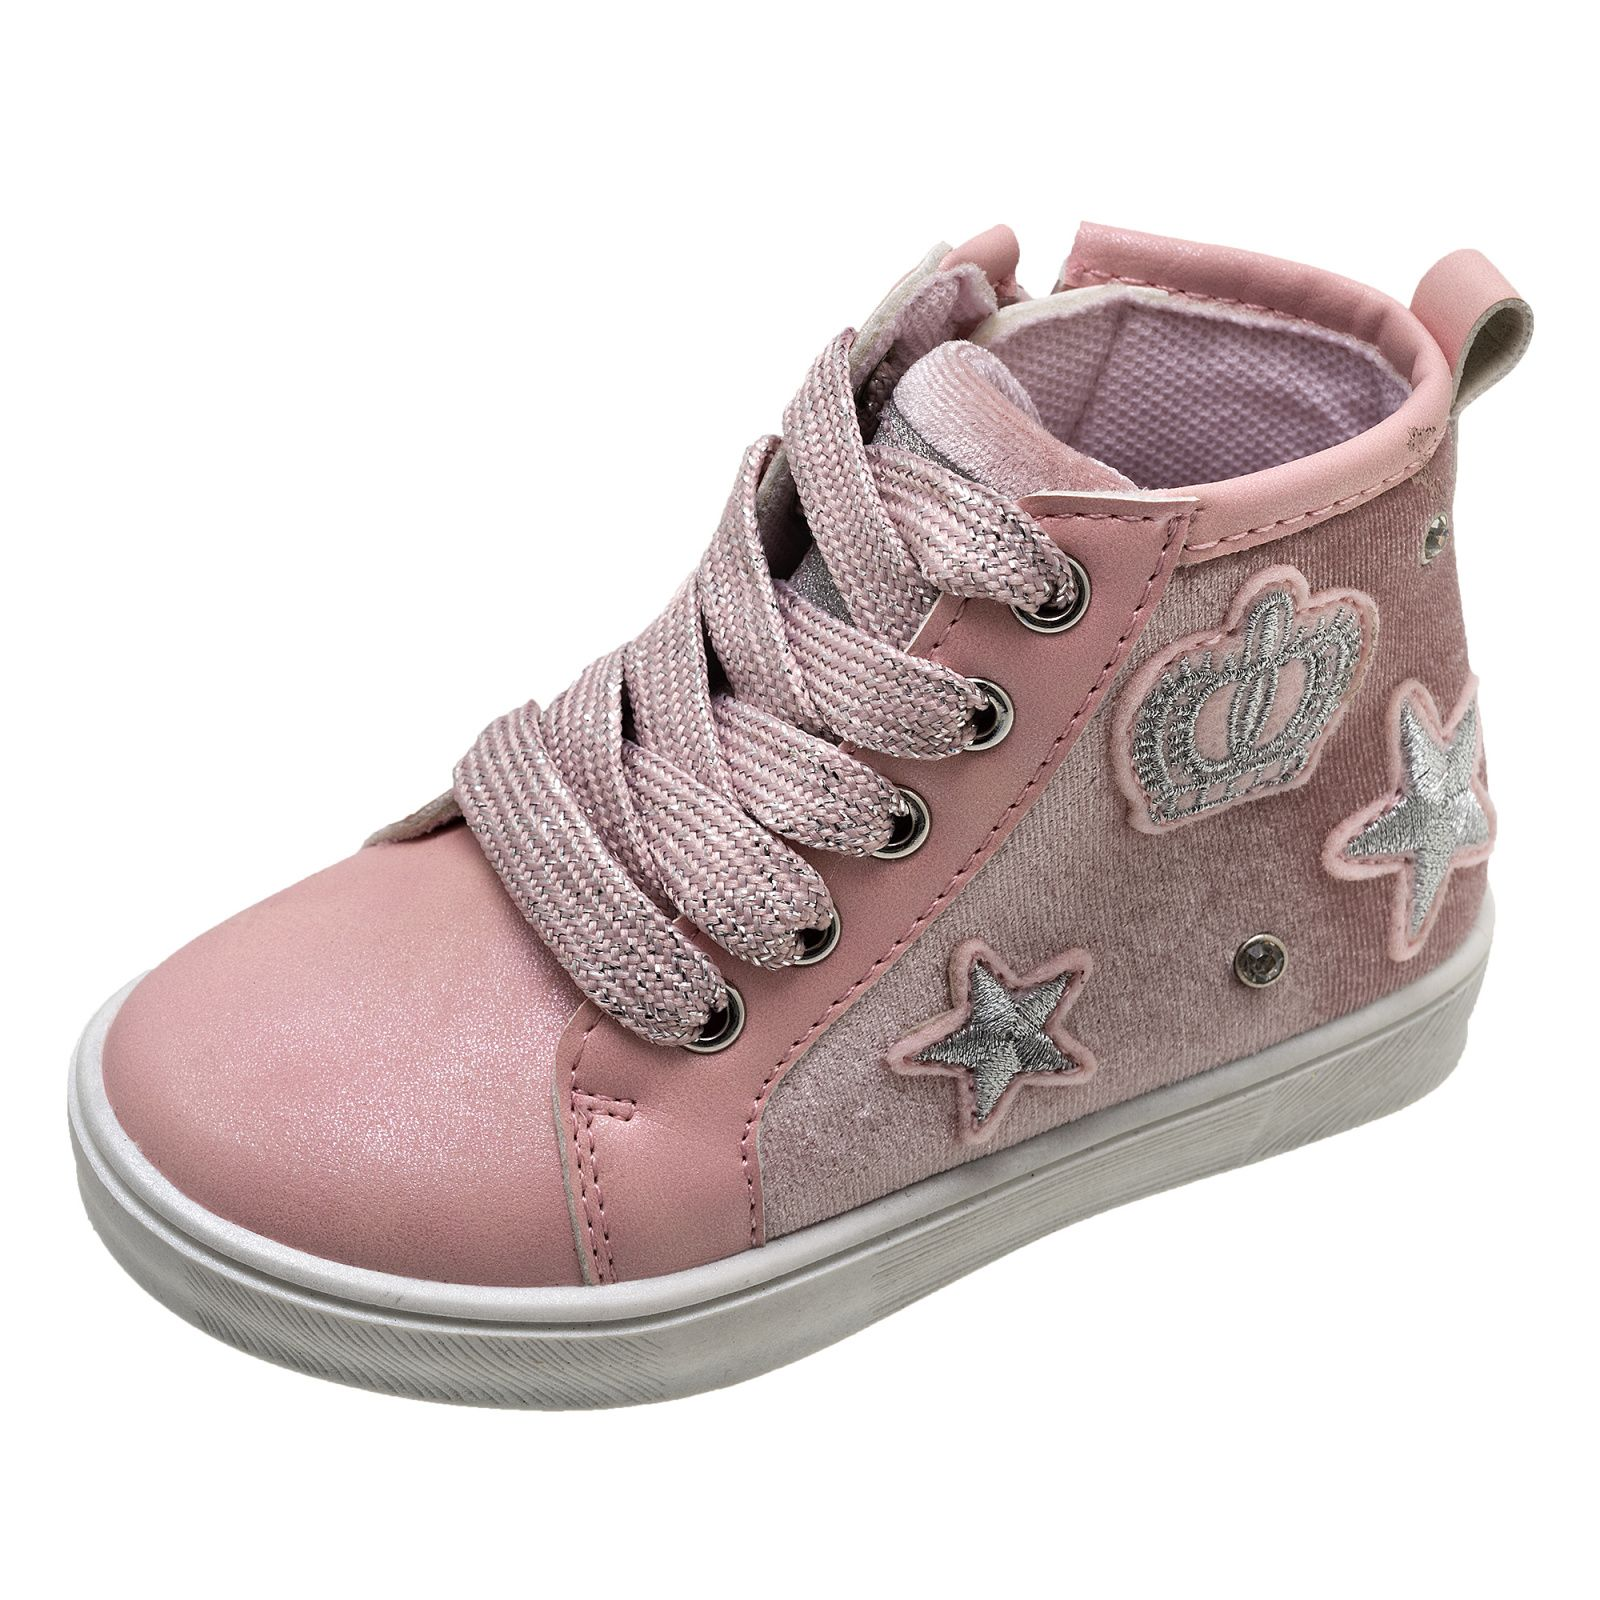 Chicco Filu Shoes, For Girls, Pink